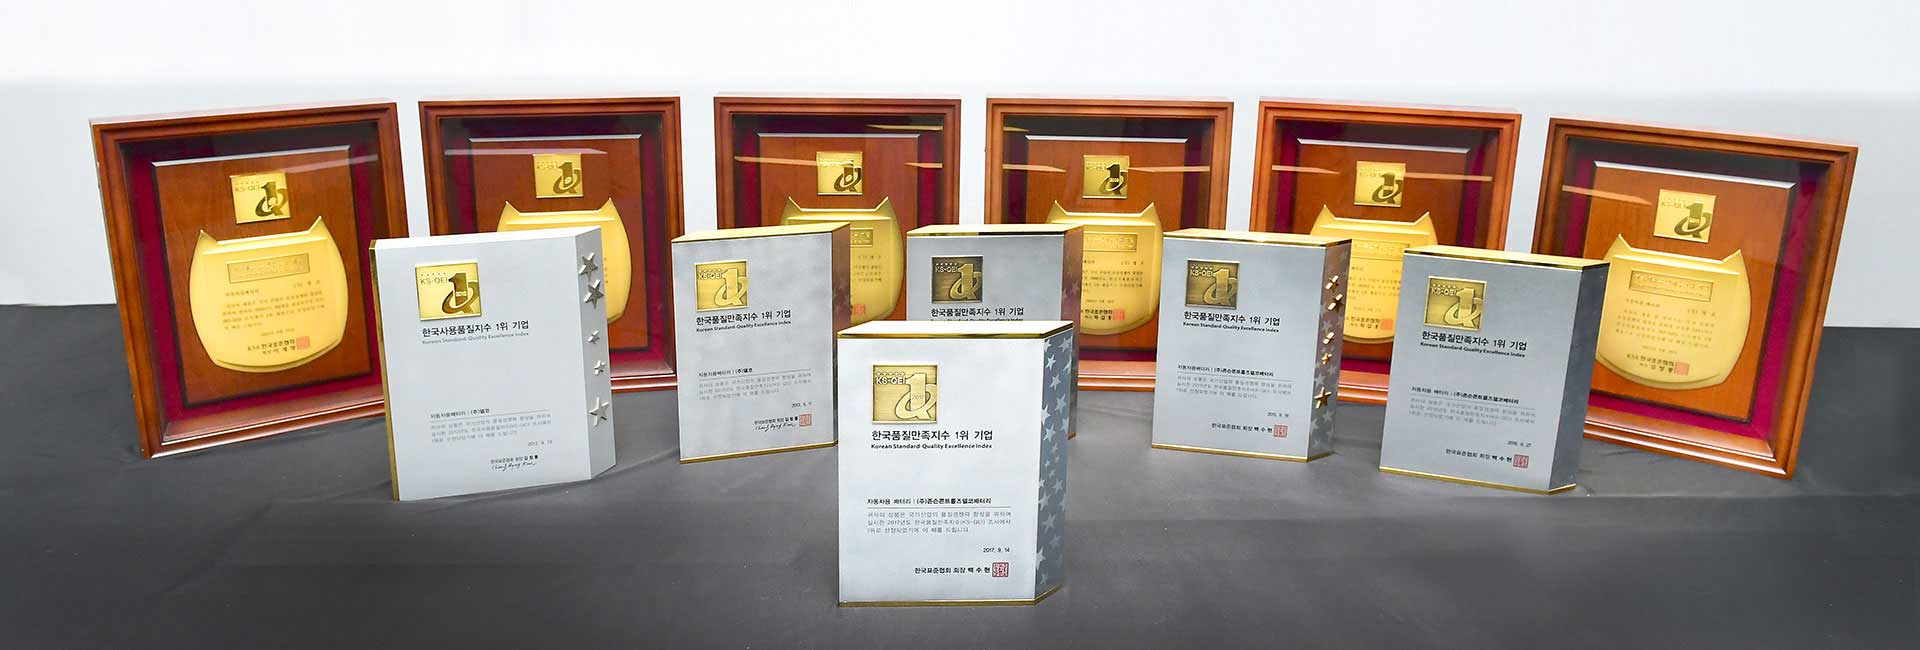 Delkor batteries have maintained the No 1 spot in the Korea Quality Excellent Award for 11 consecutive years.